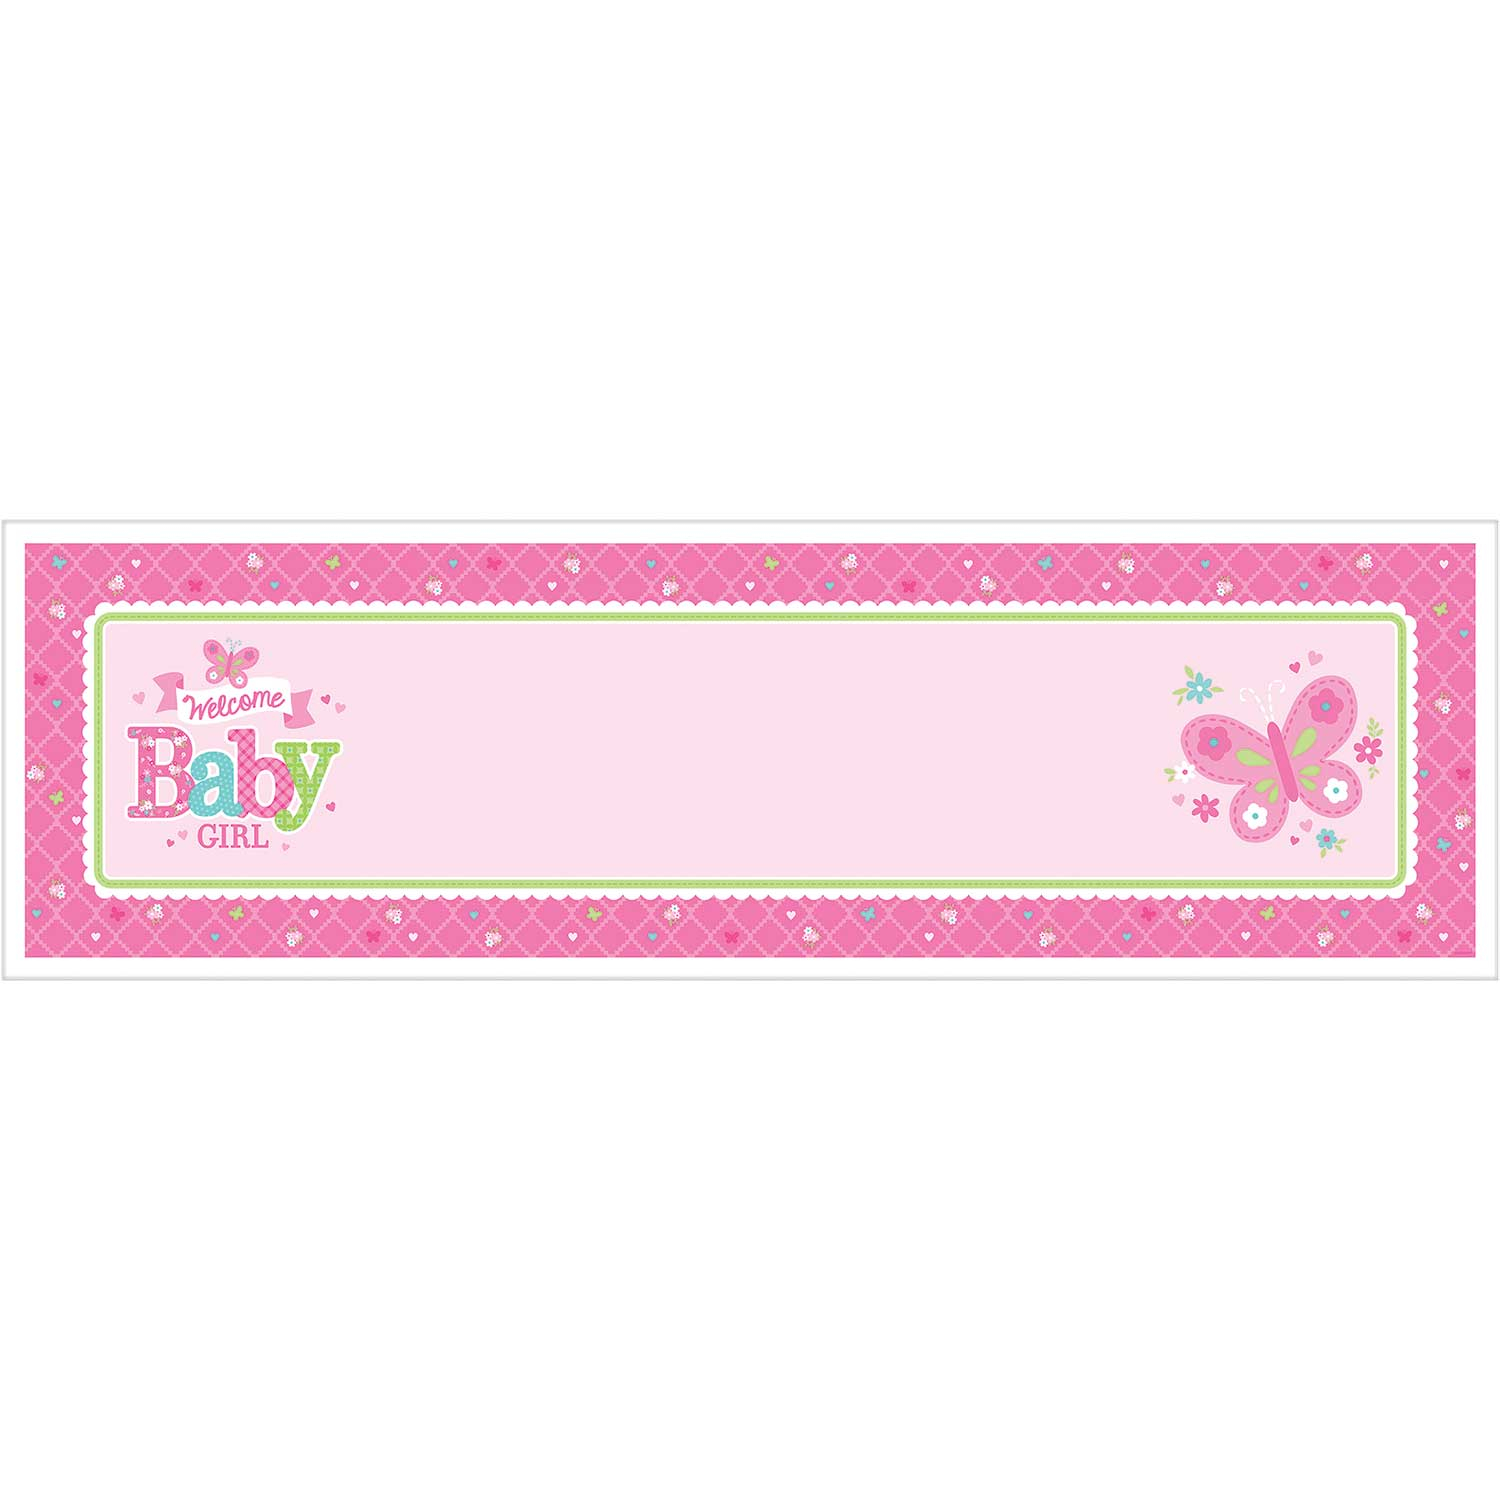 welcome baby girl personalise it giant sign banner 12 pkg